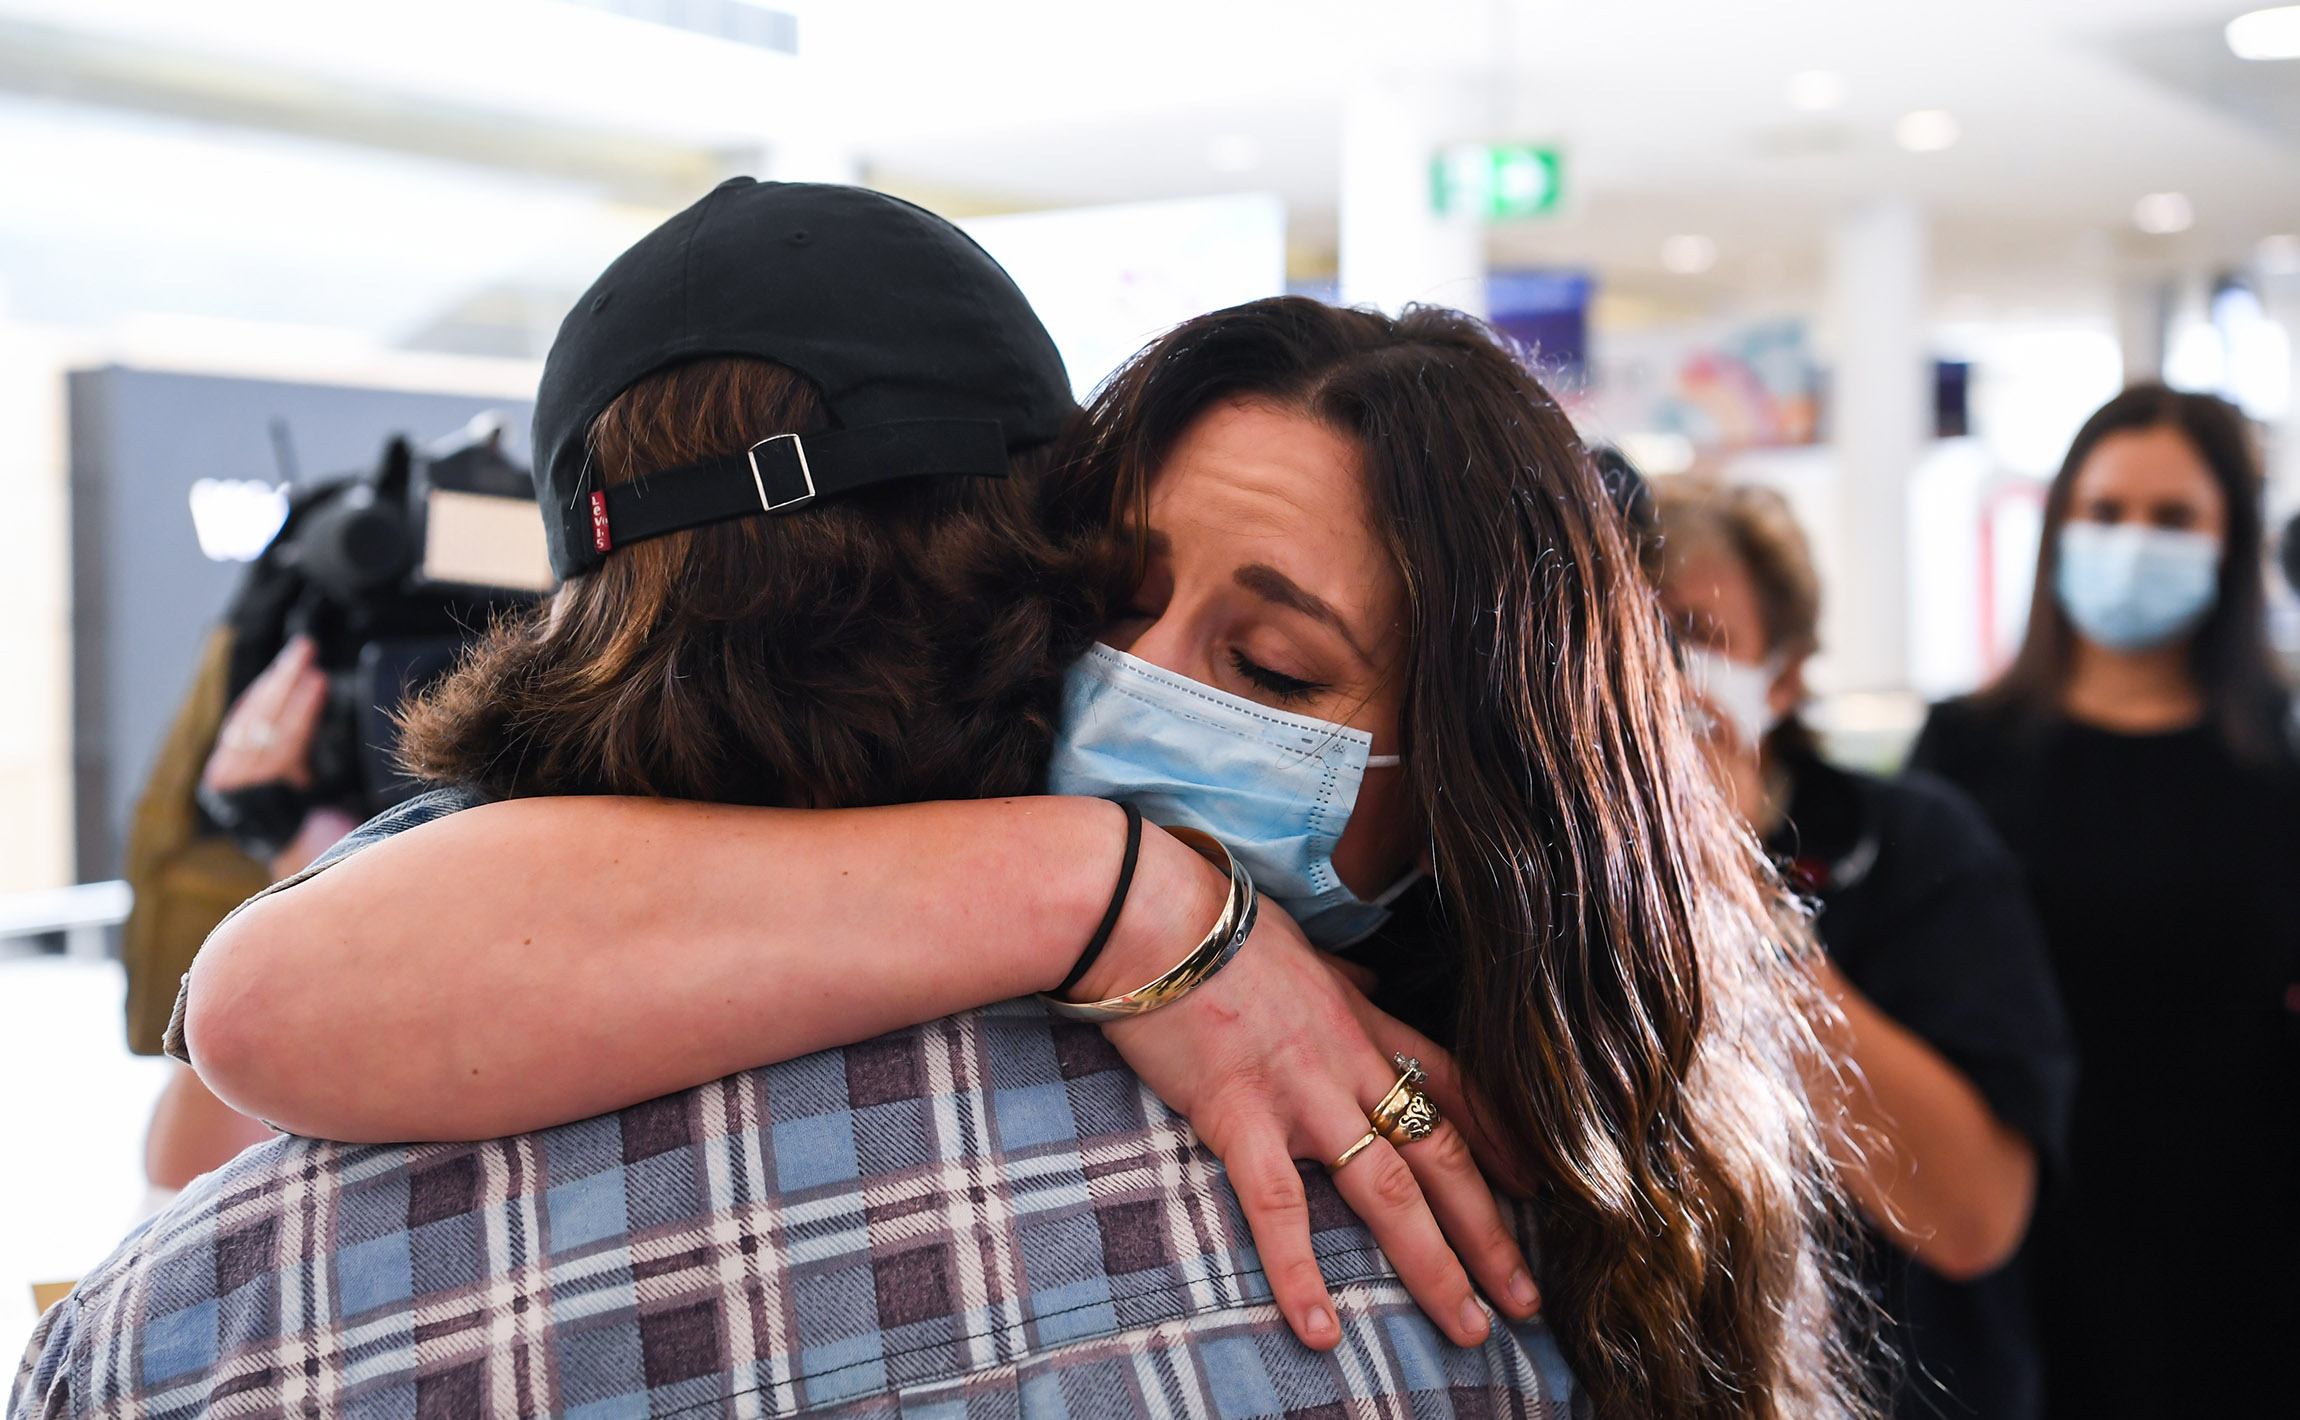 A woman hugs her loved one after arriving at Sydney's Kingsford Smith Airport on an Air New Zealand flight from Auckland on October 16.